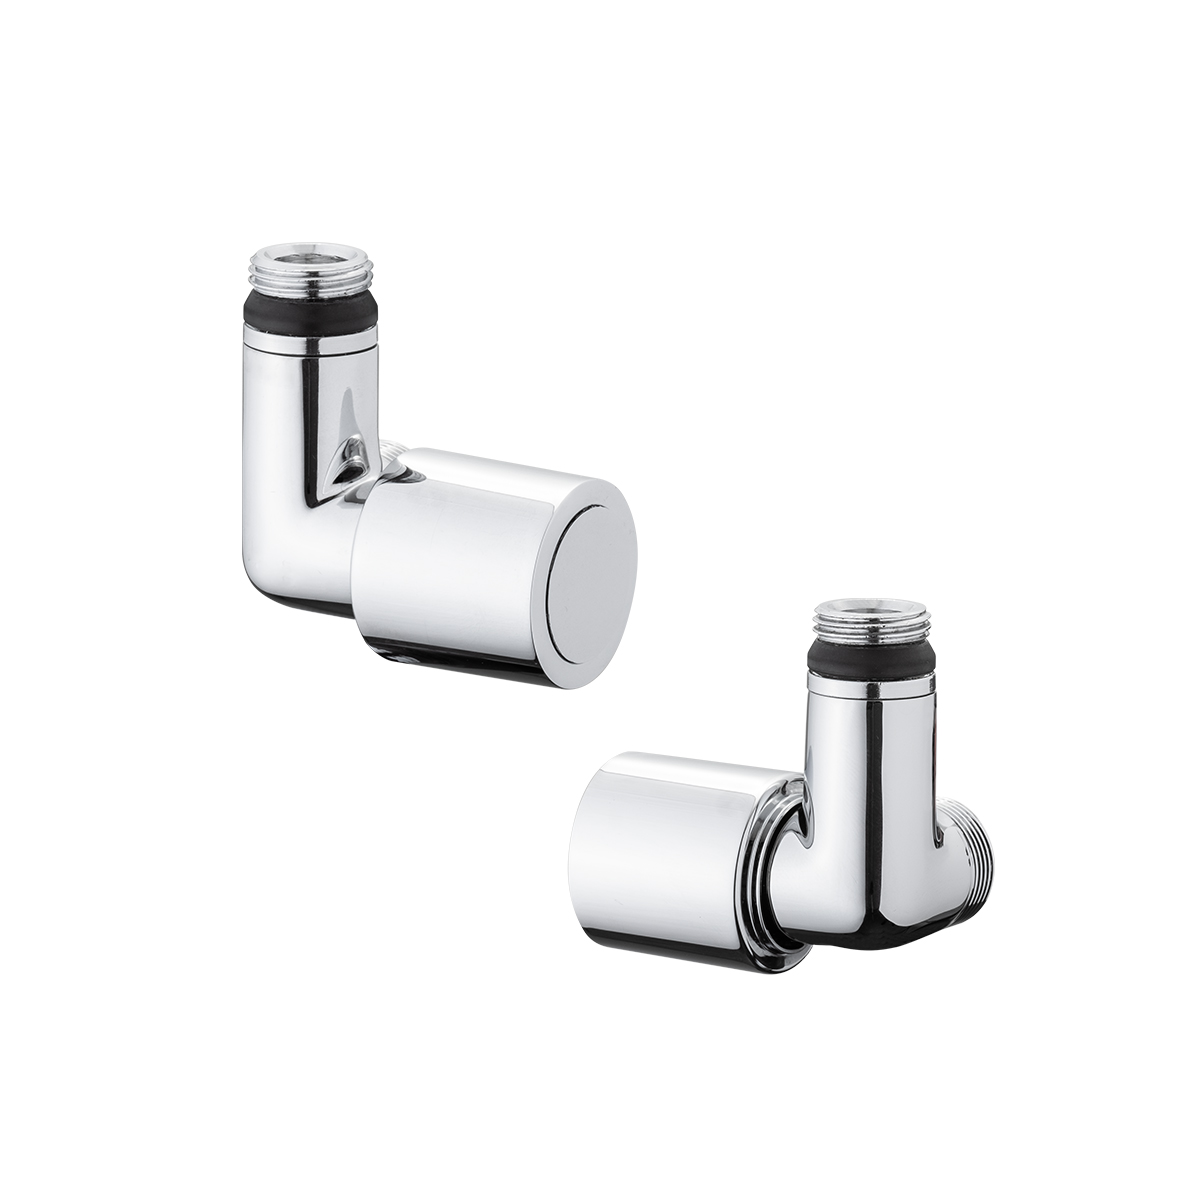 Double angle valve with thermostatic option Chrome finish.